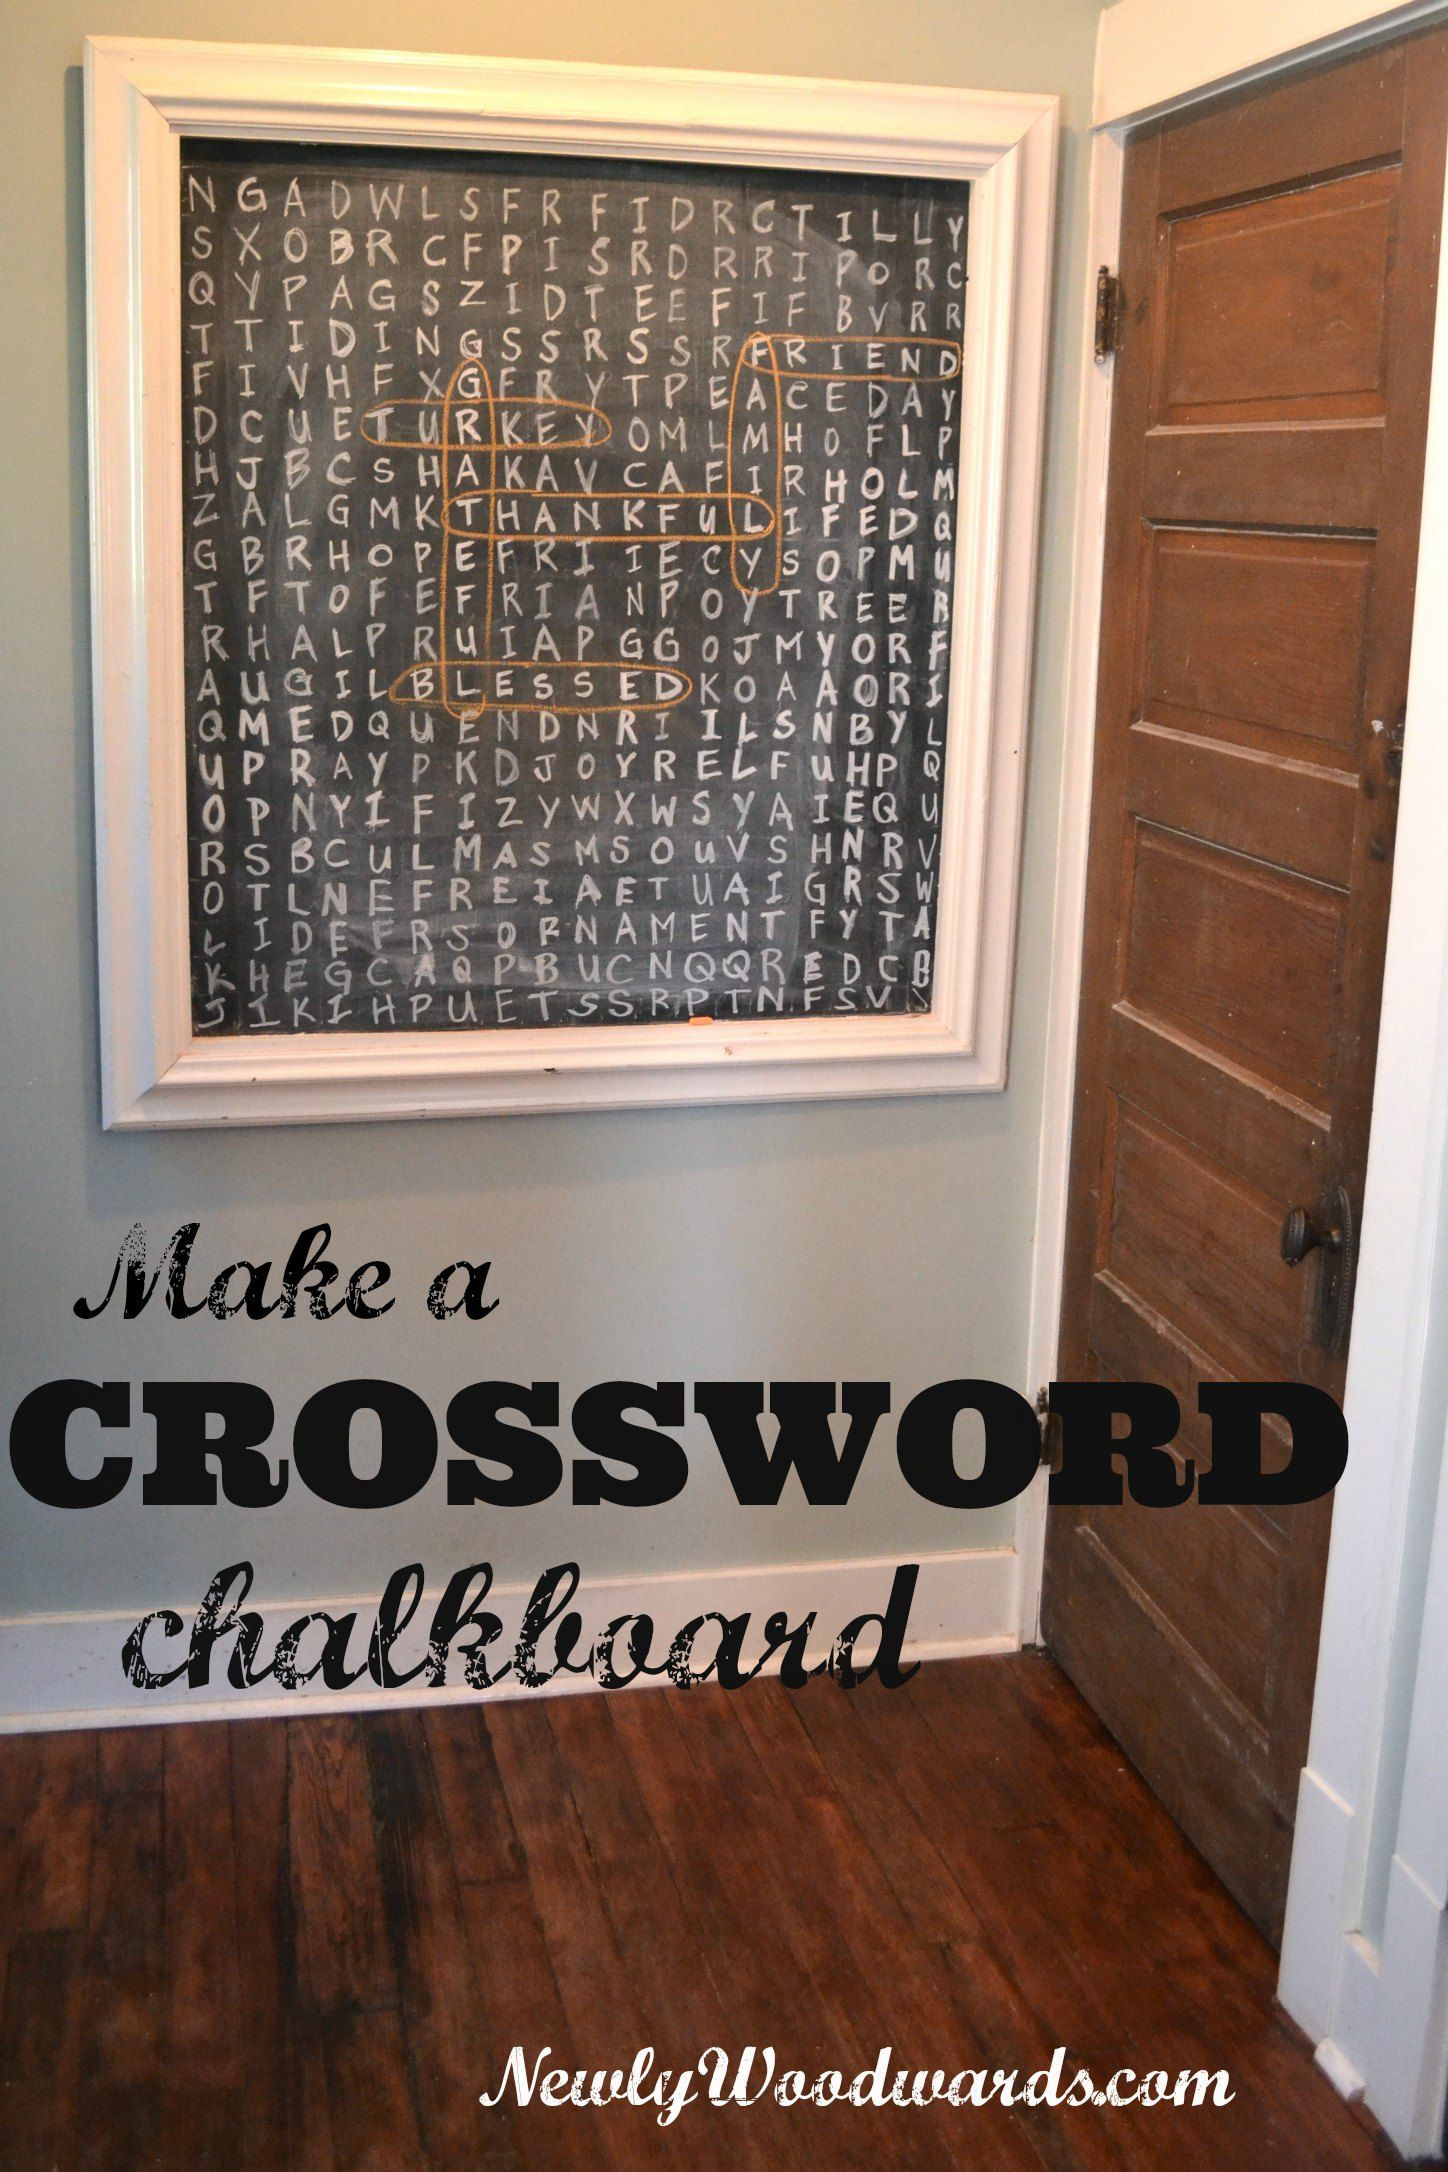 Hardwood Floor Maintenance Crossword Of A Thanksgiving Word Search Diy Pinterest Chalkboards Word within Diy Word Search for Thanksgiving Dinner Guests or Entertaining In General Diy Crossword Entertainment